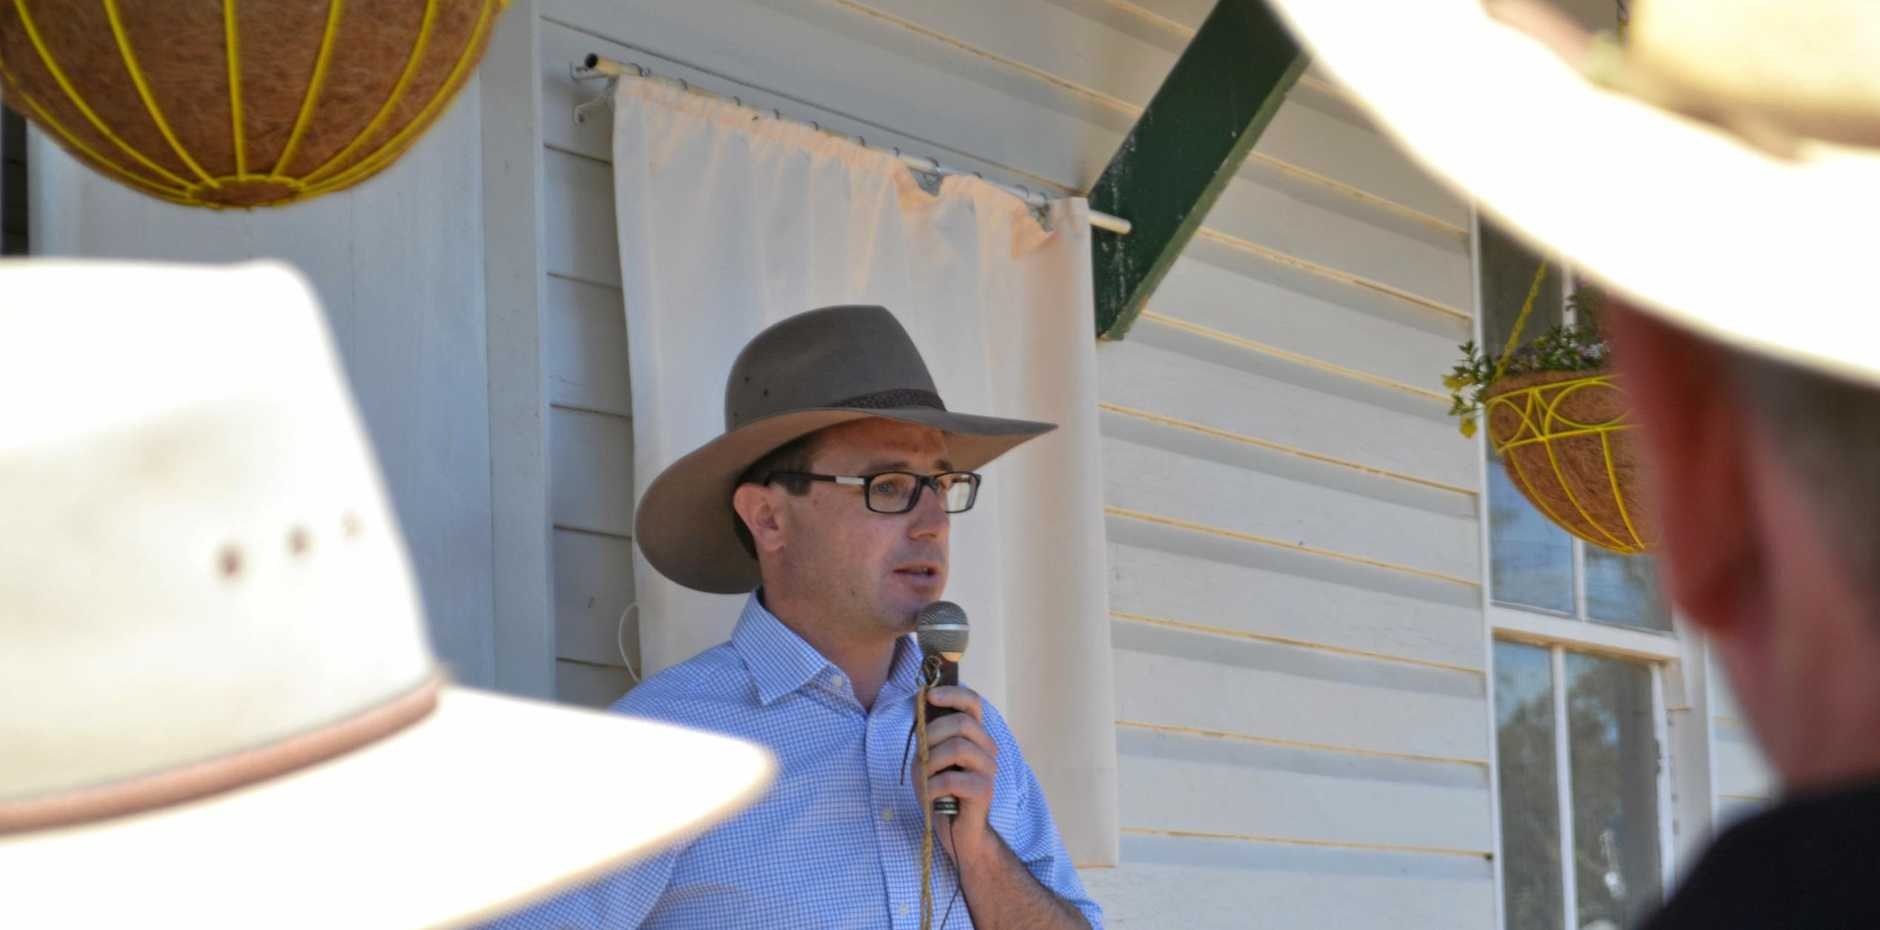 Minister for Agriculture David Littleproud will tour Mackay, Proserpine, Bowen and Burdekin regions to talk to growers.